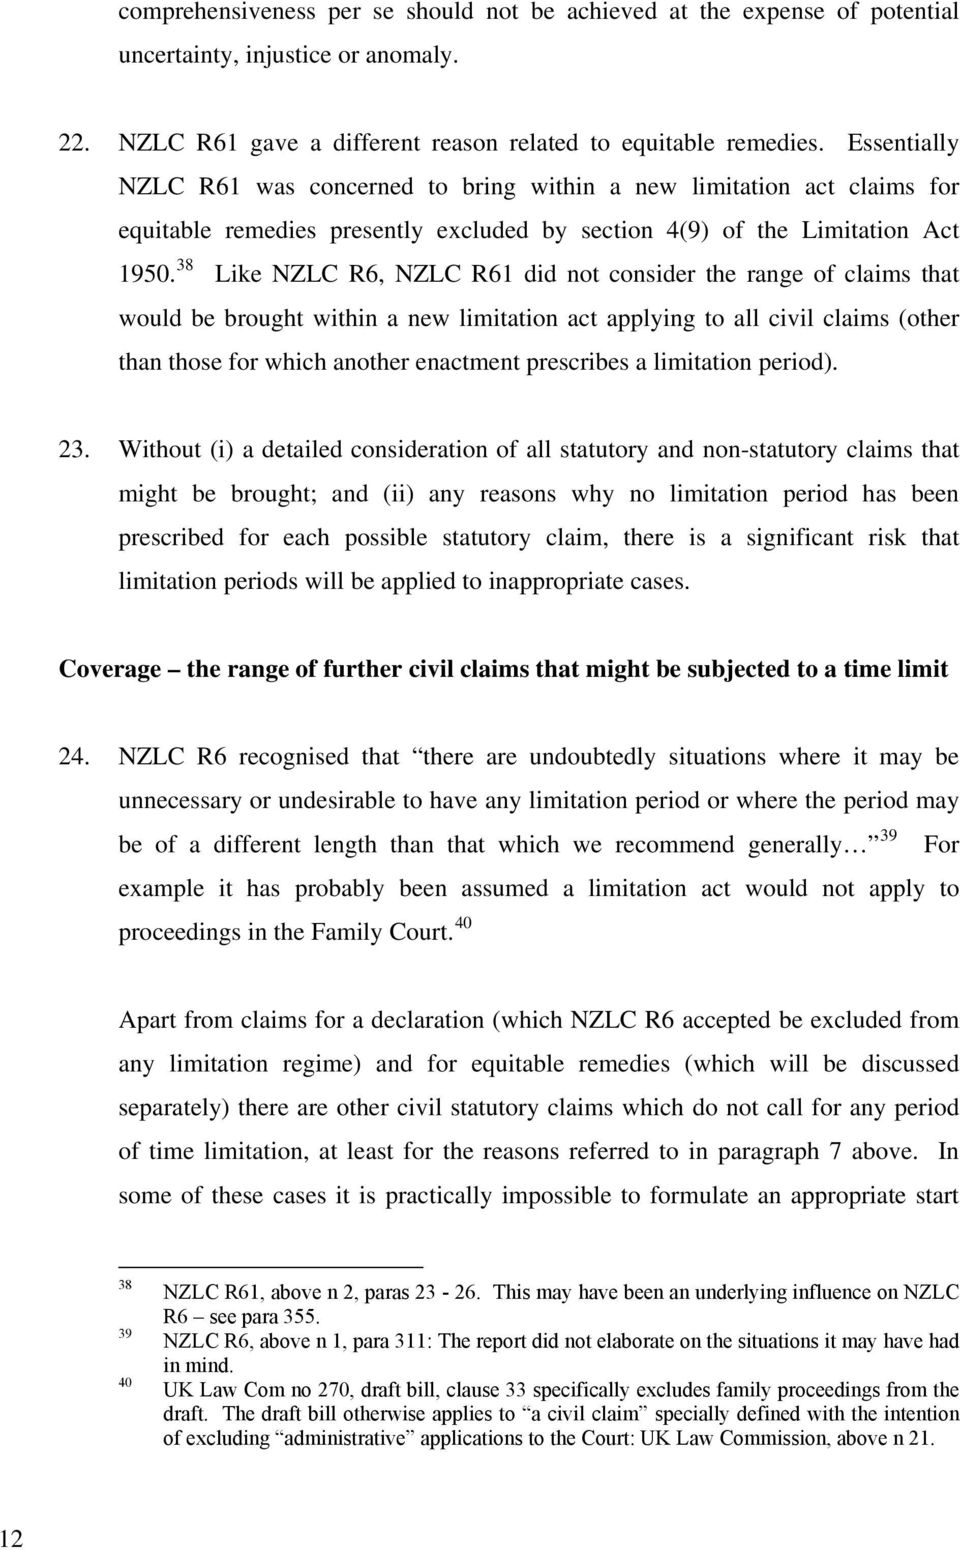 38 Like NZLC R6, NZLC R61 did not consider the range of claims that would be brought within a new limitation act applying to all civil claims (other than those for which another enactment prescribes